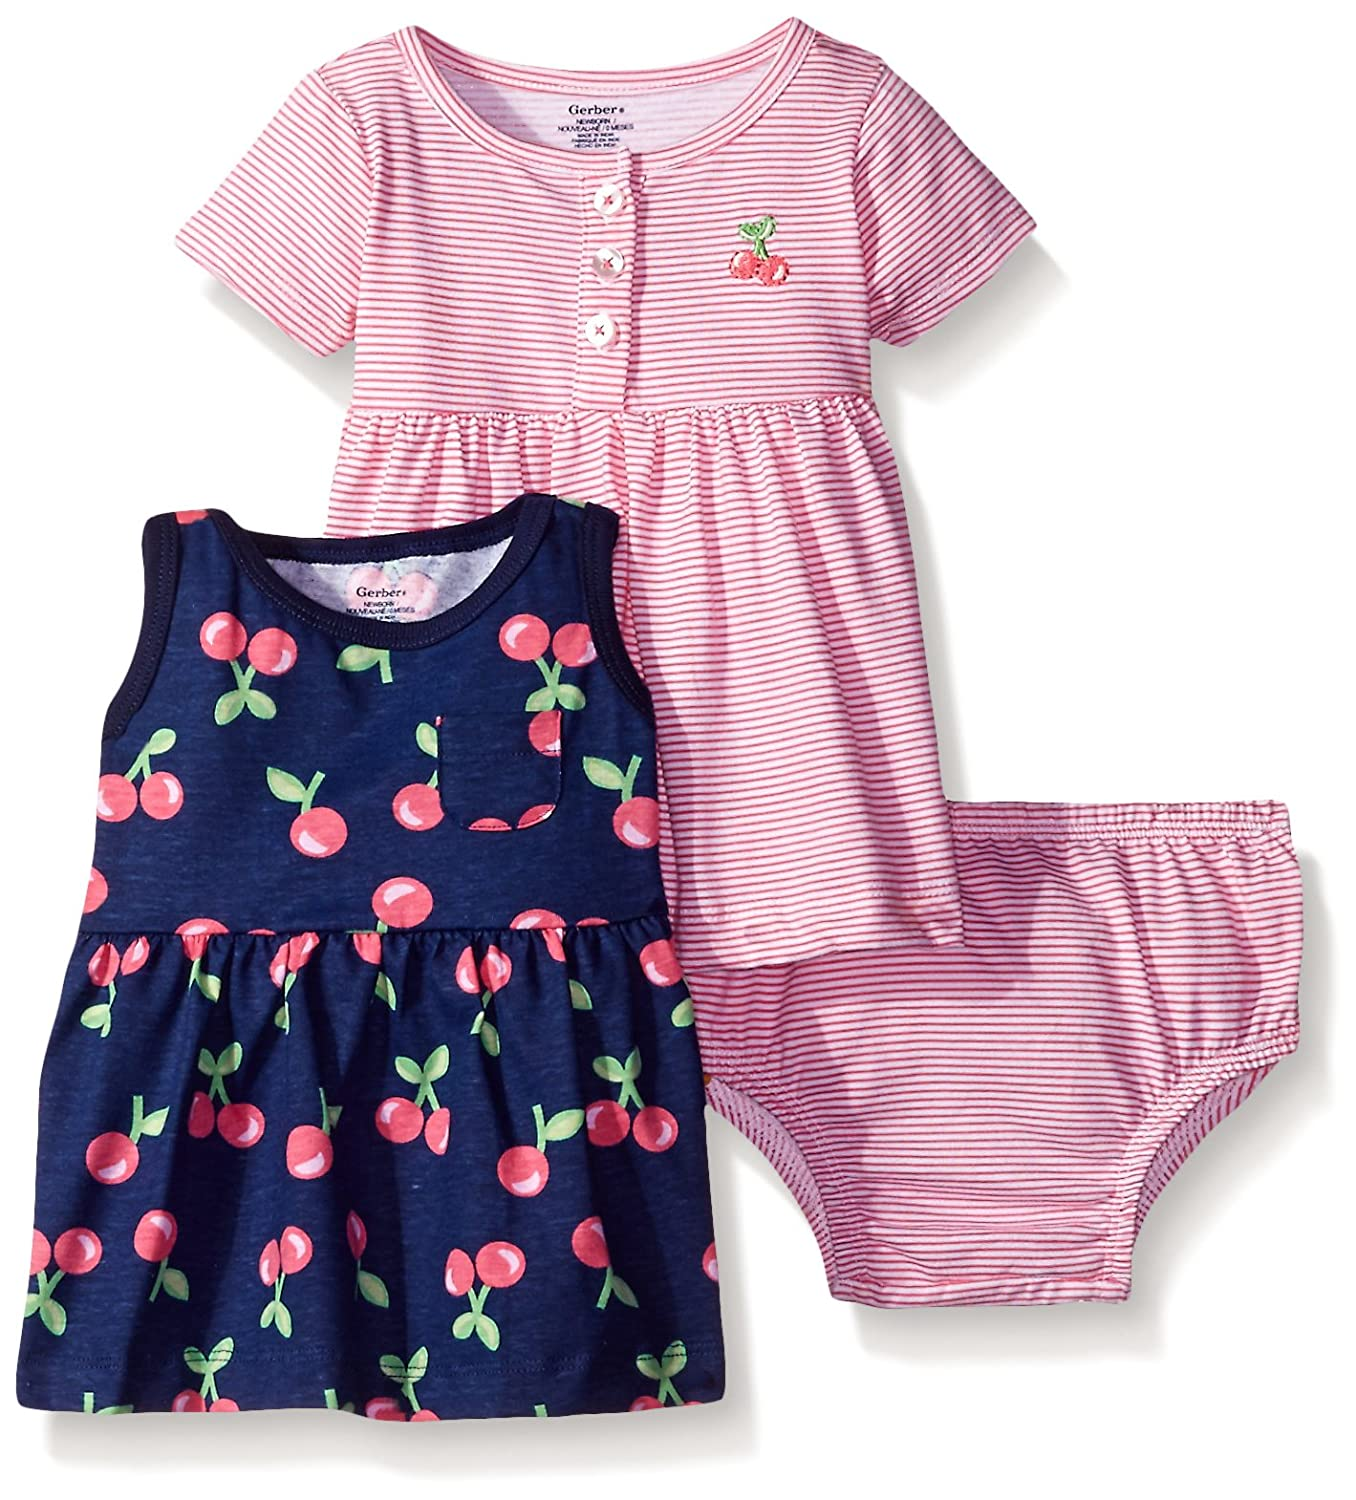 Gerber Baby and Little Girls' Dress Set Gerber Children' s Apparel